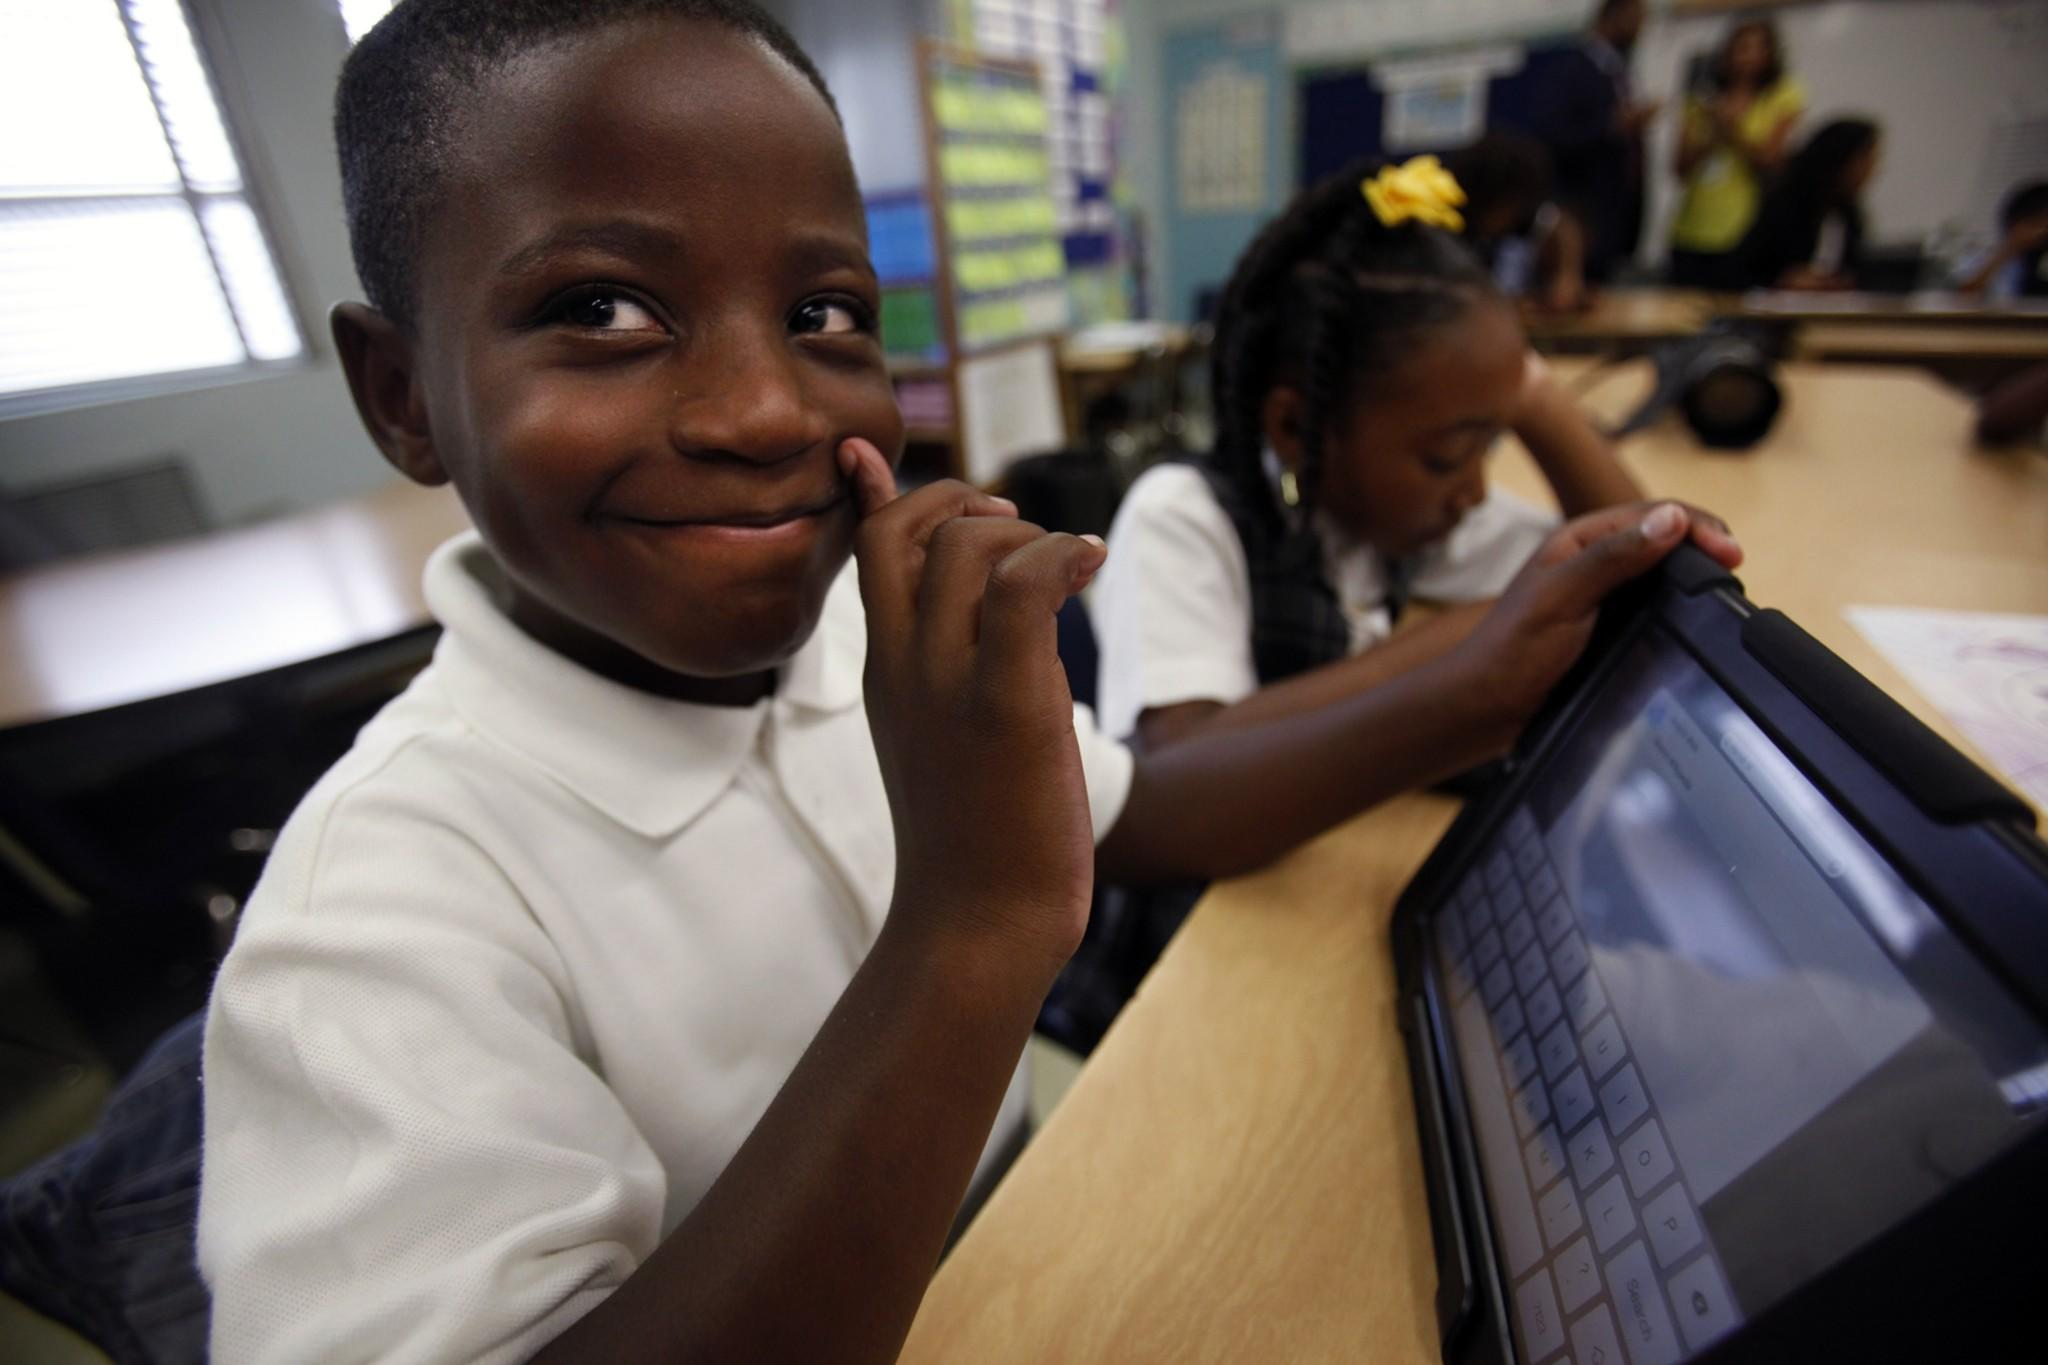 A student smiles as he uses an LAUSD-issued iPad.